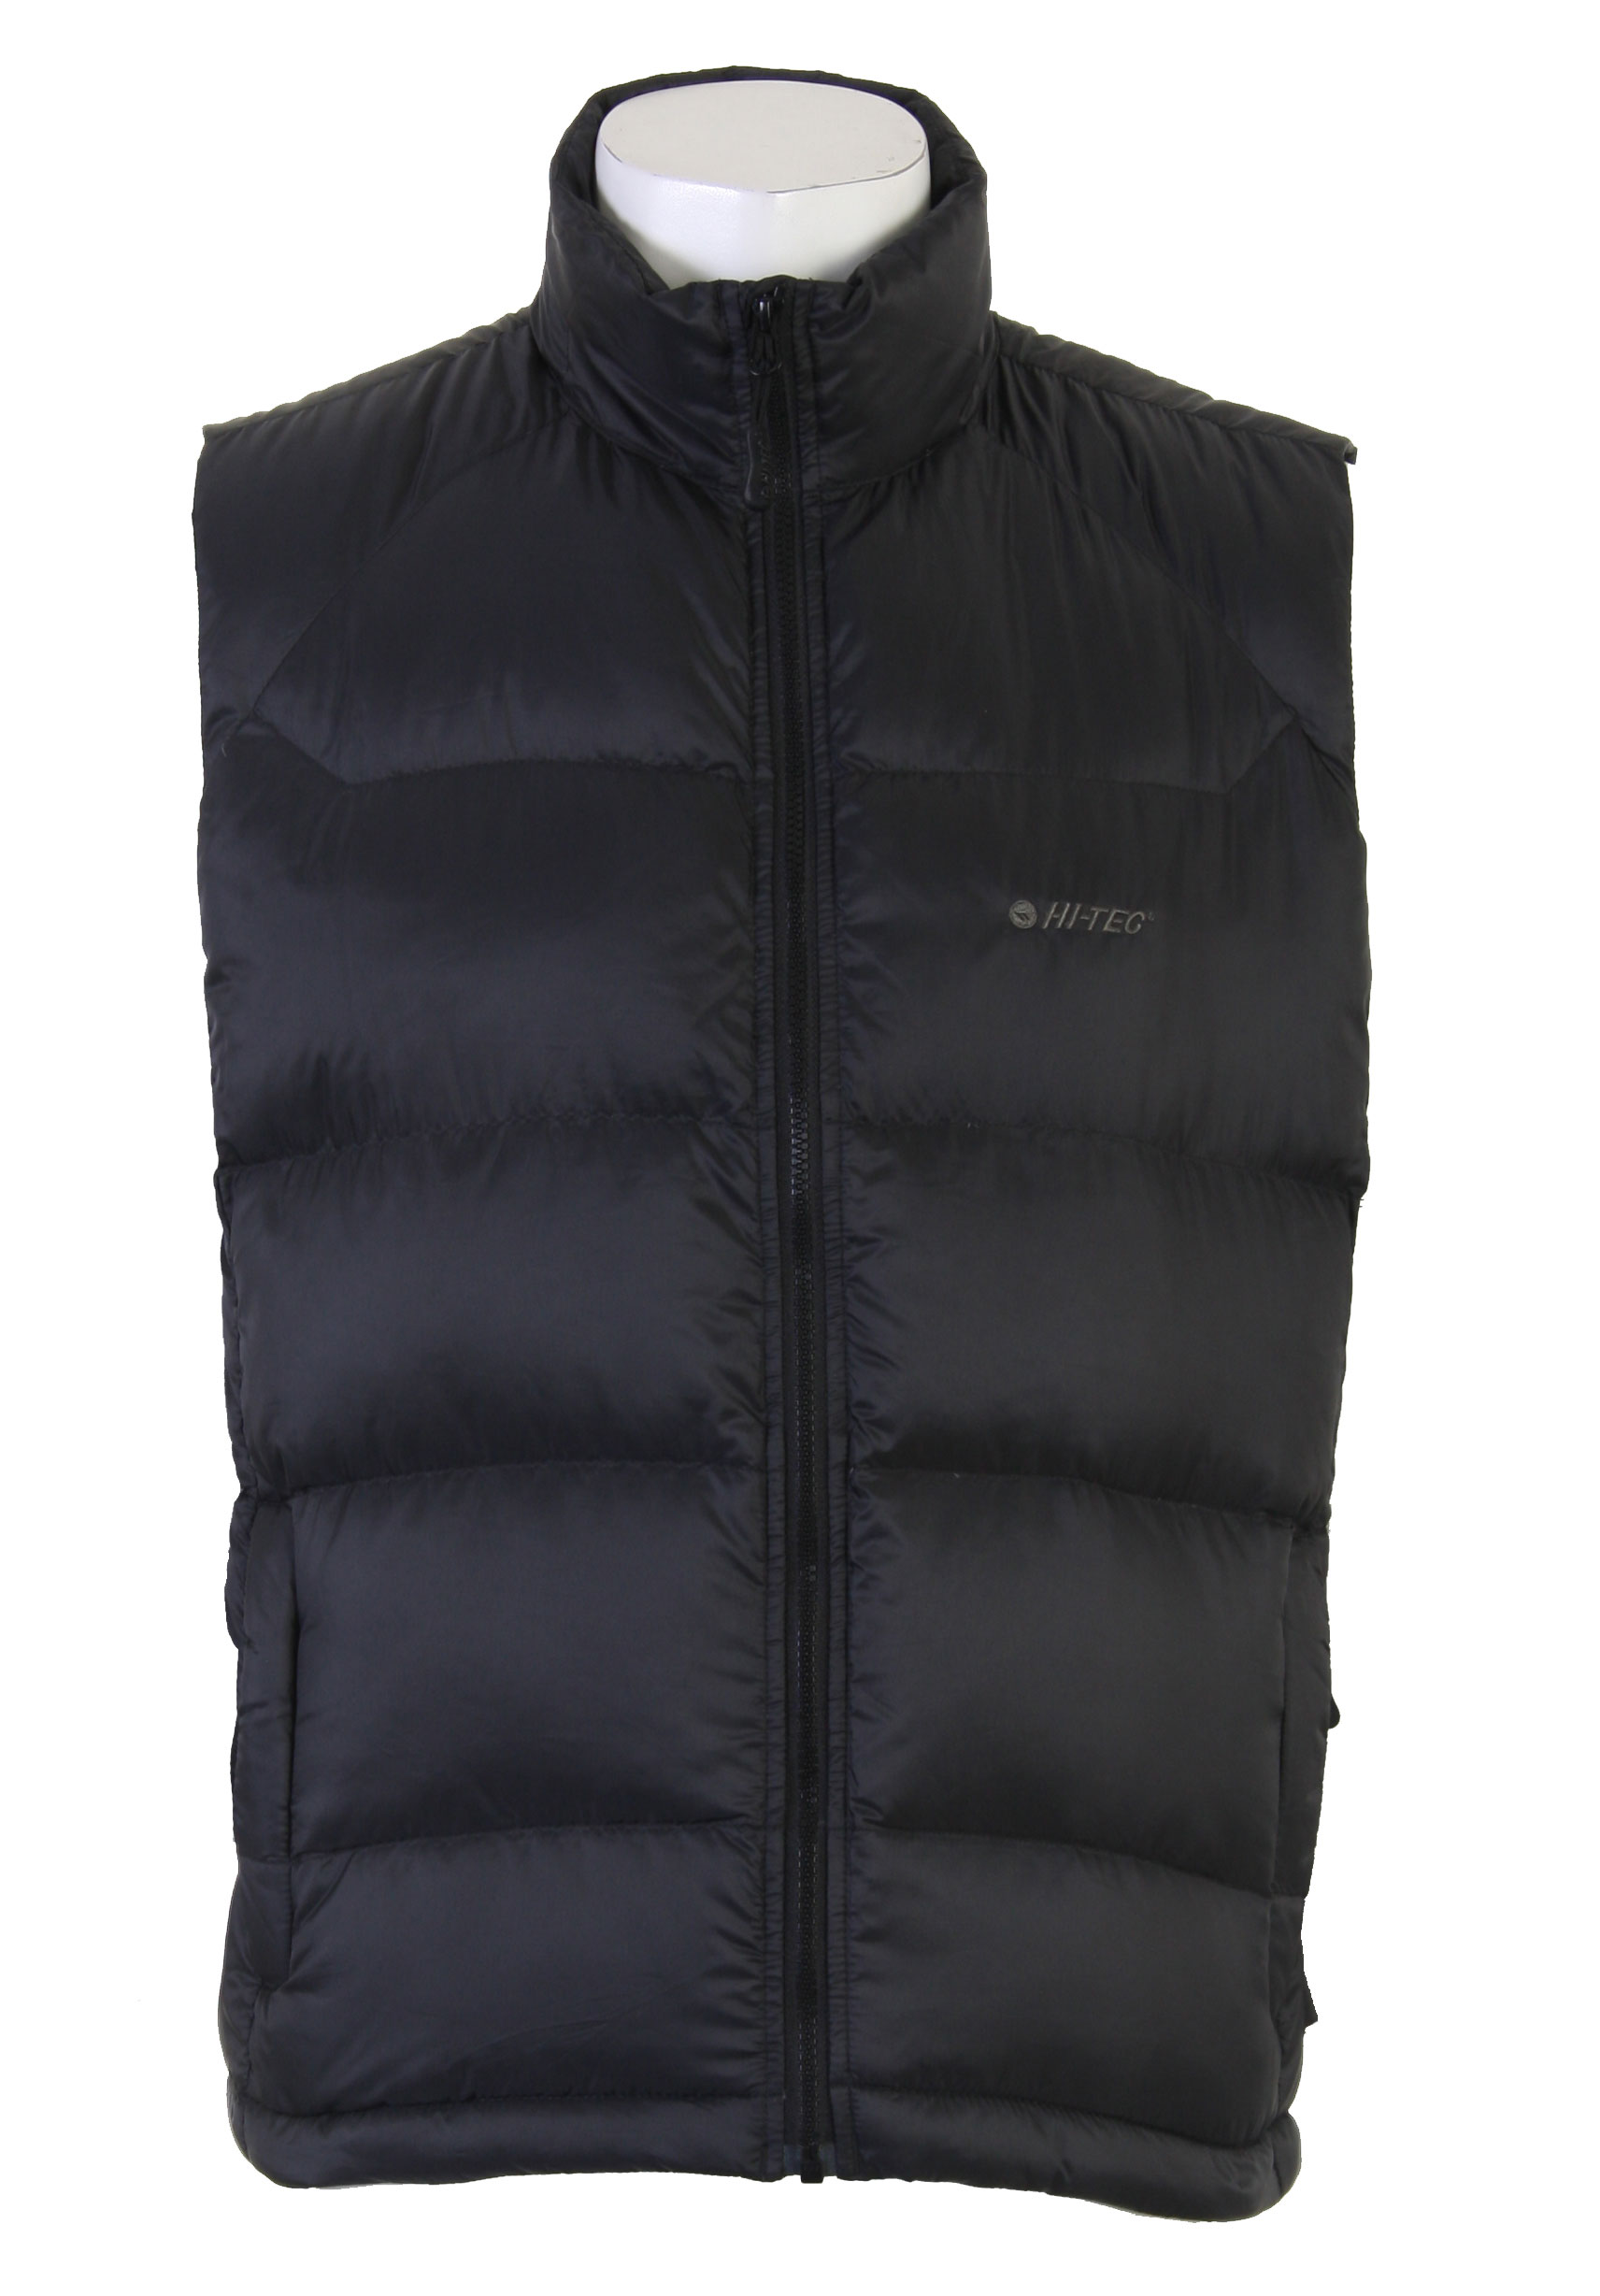 The Hitec Moraine Vest is a perfect example of not having to compromise comfort, warmth, or fashion. This vest is an excellent thing to wear, because it is extremely comfortable, very warm, and highly stylish. The comfort of this vest comes from the puffy interior. The warmth of this vest also comes from the interior, however this time it actually comes from the insulation. The style of the vest is obvious, and it comes from the entire exterior. This is a great vest to own because of the versatility.Key Features of the Hitec Moraine Vest: 2 Zippered Hand Warmer Pockets 2 Interior Pockets Single Hand Drawcord Adjustable Hem Shell: Featherweight 100% Polyester 40D Ripstop Lining: 100% Polyester 40D Down Proof Ripstop Insulation: 550 Fill Power Down - $47.95